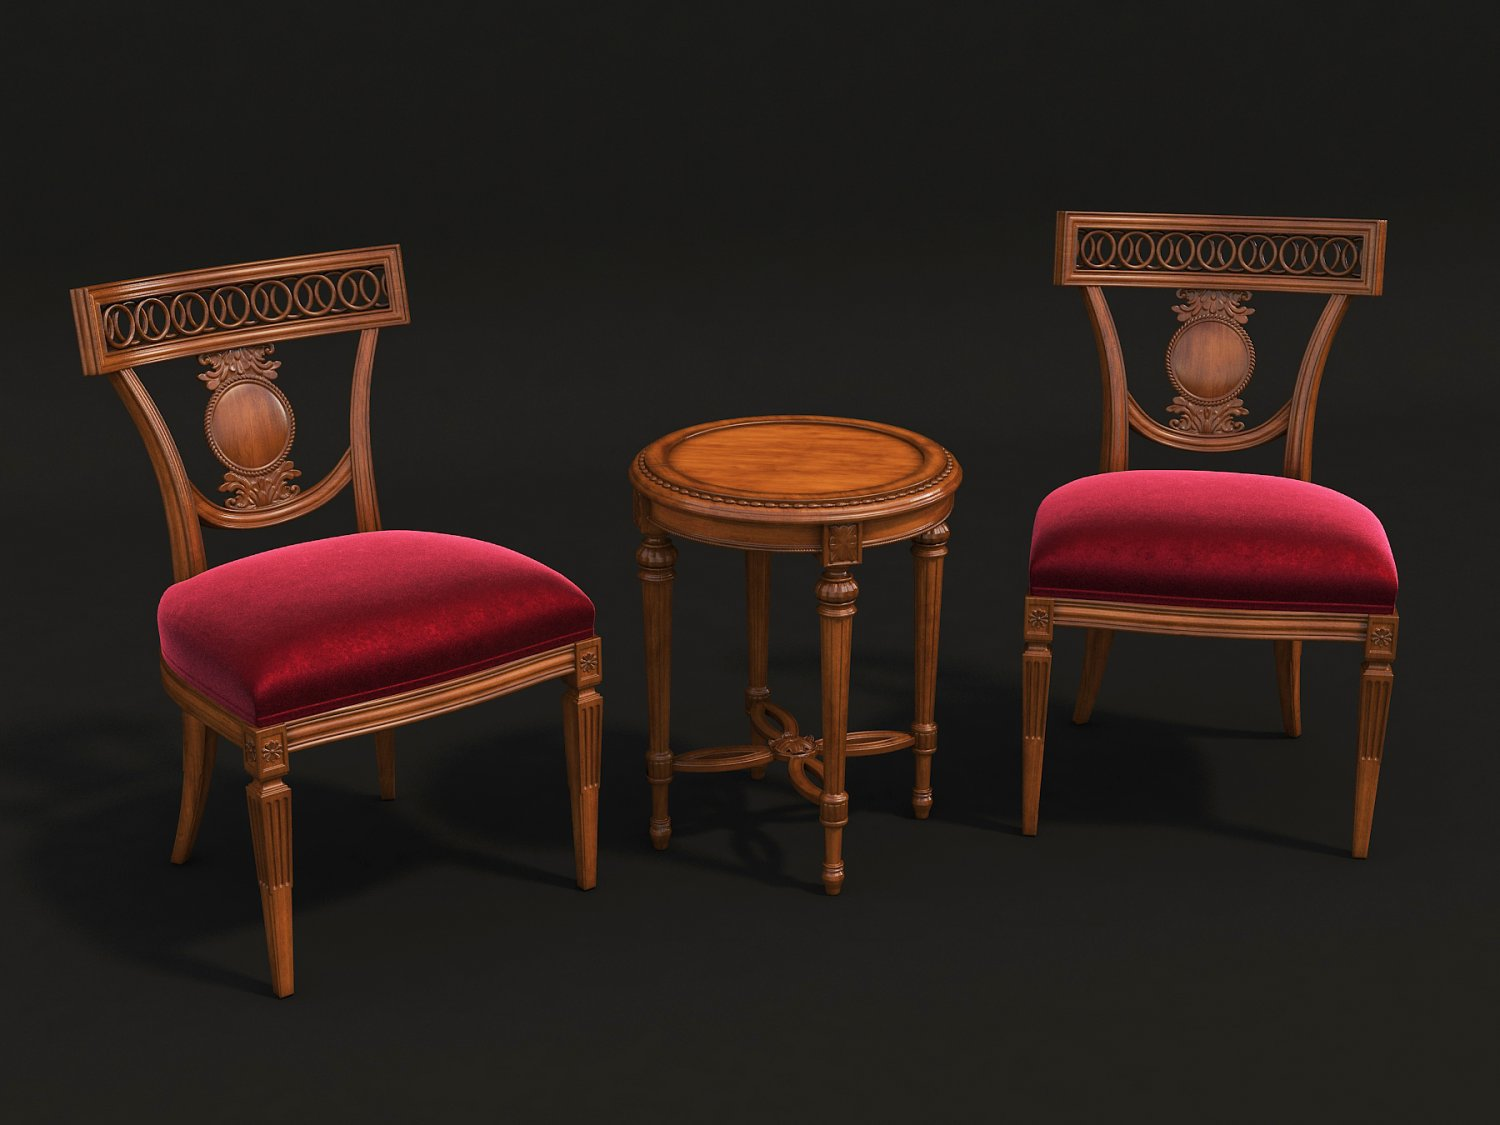 european style carving chair and table 3d model c4d max obj fbx ma lwo 3ds 3dm stl o